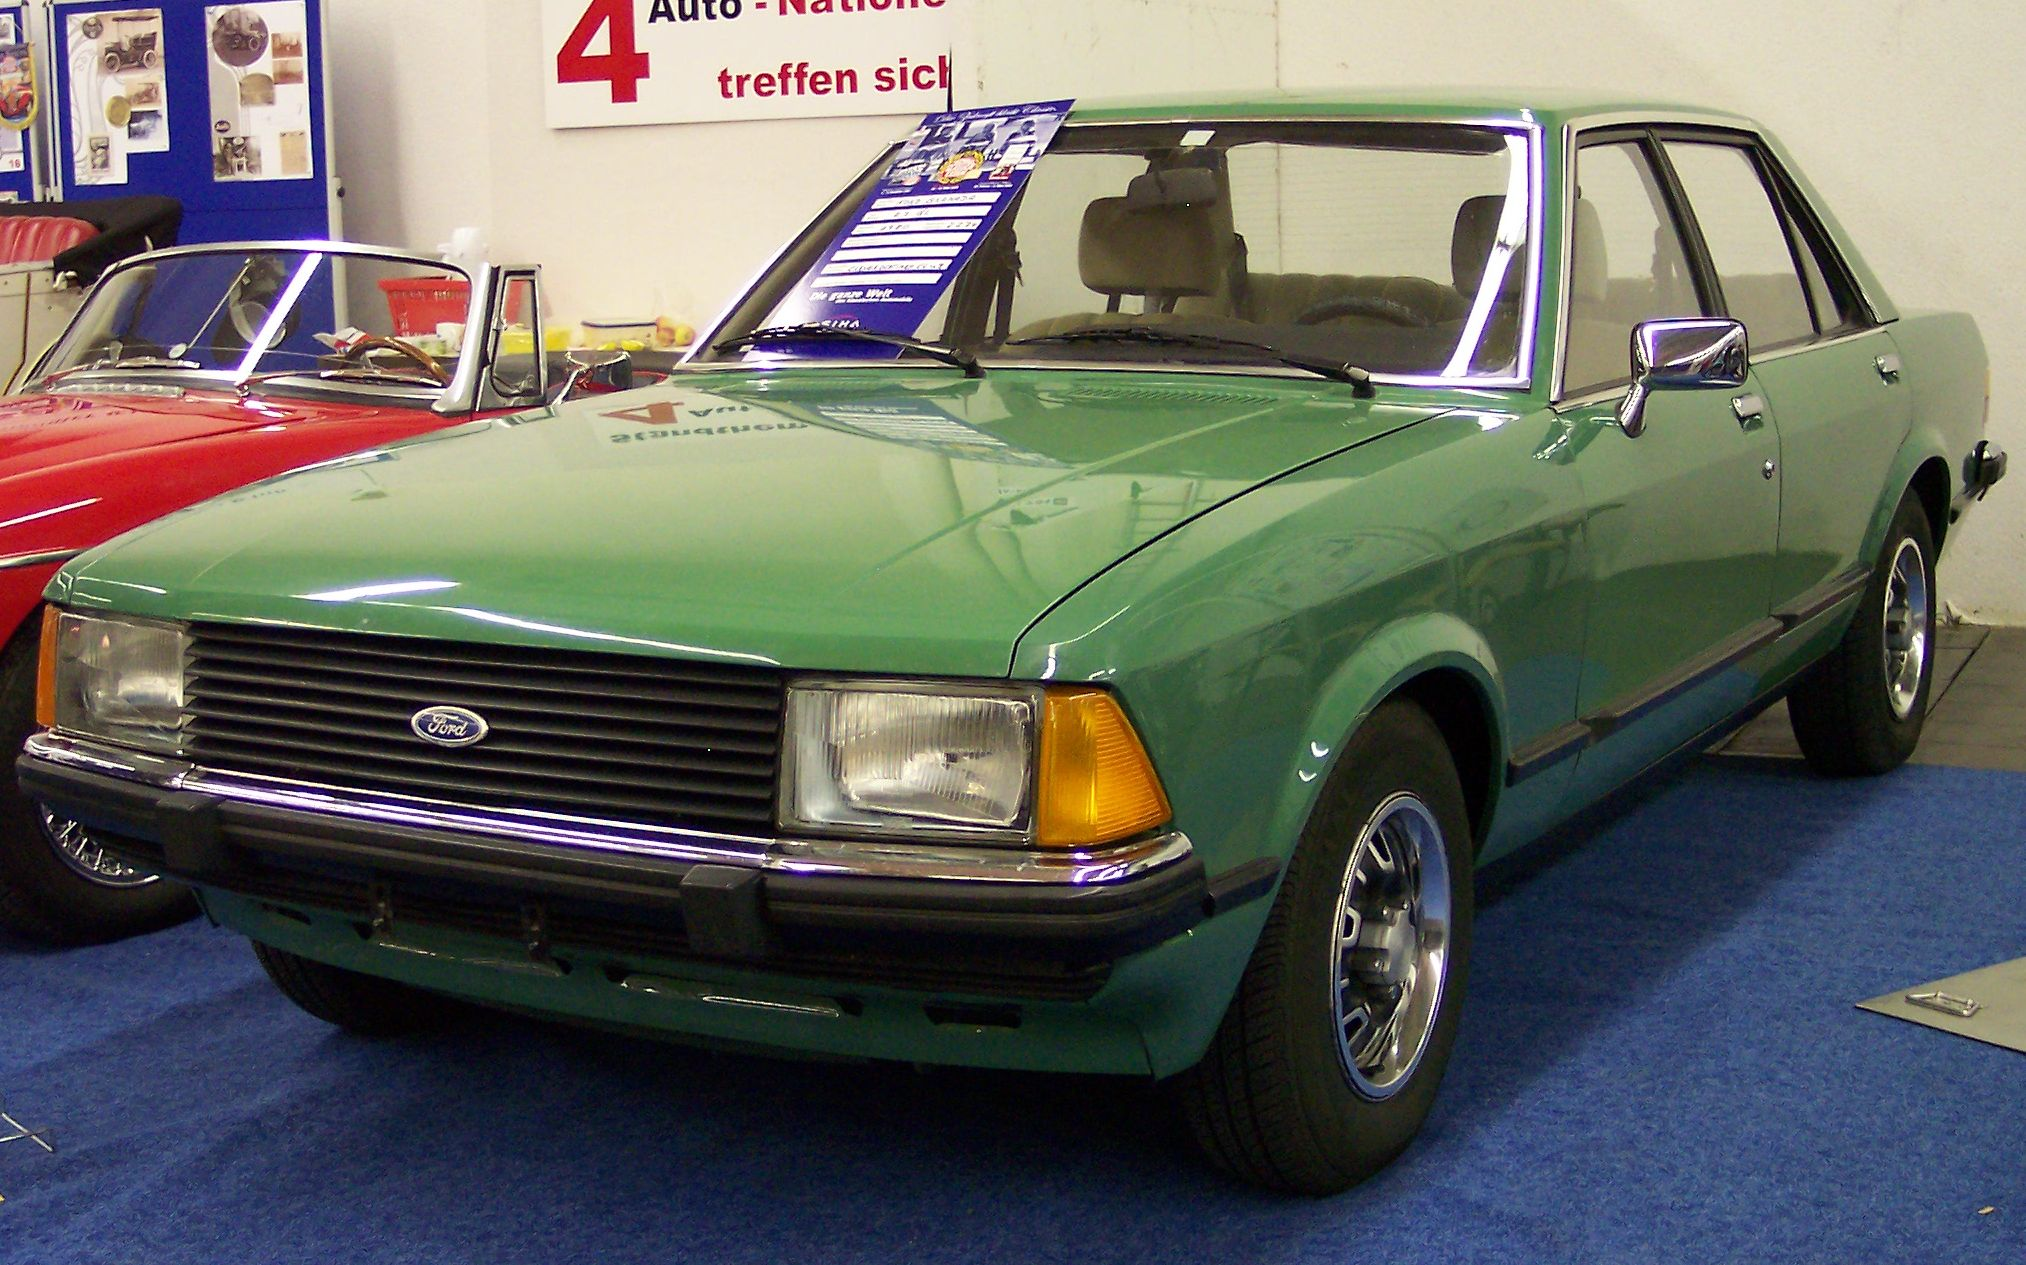 File:Ford Granada vl green TCE.jpg - Wikimedia Commons